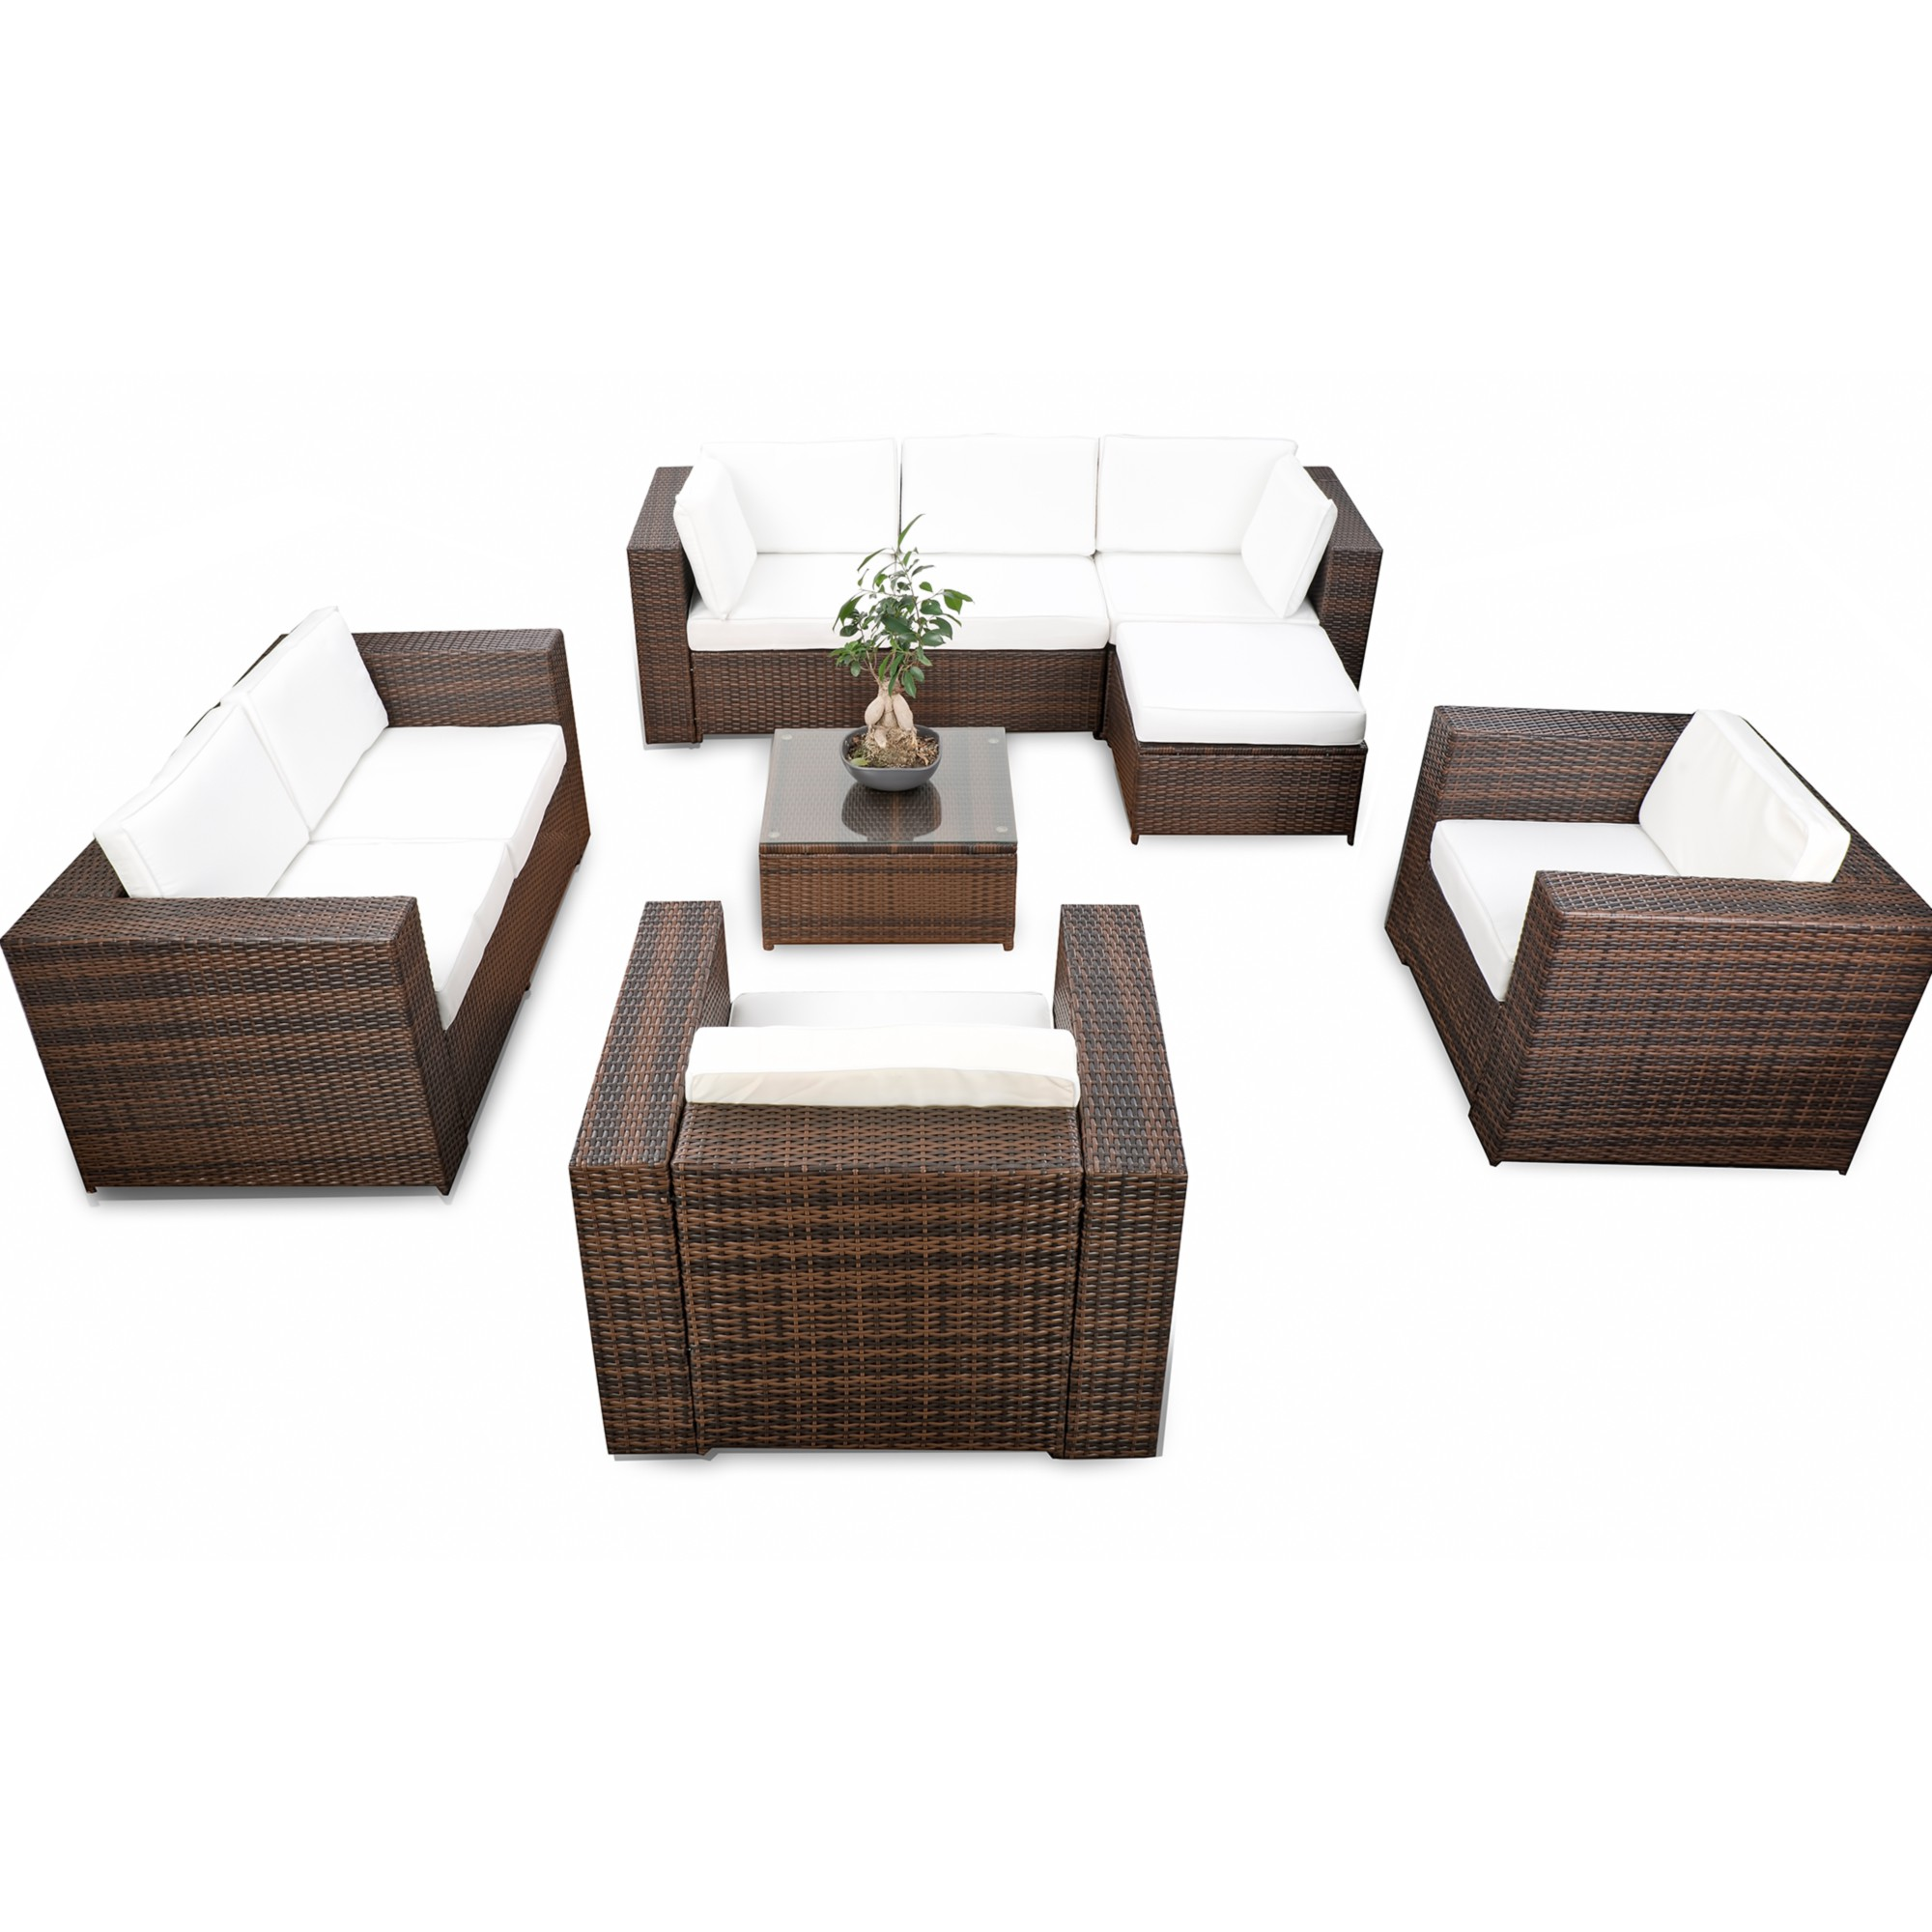 gartenlounge polyrattan g nstig rattan gartenlounge kaufen. Black Bedroom Furniture Sets. Home Design Ideas